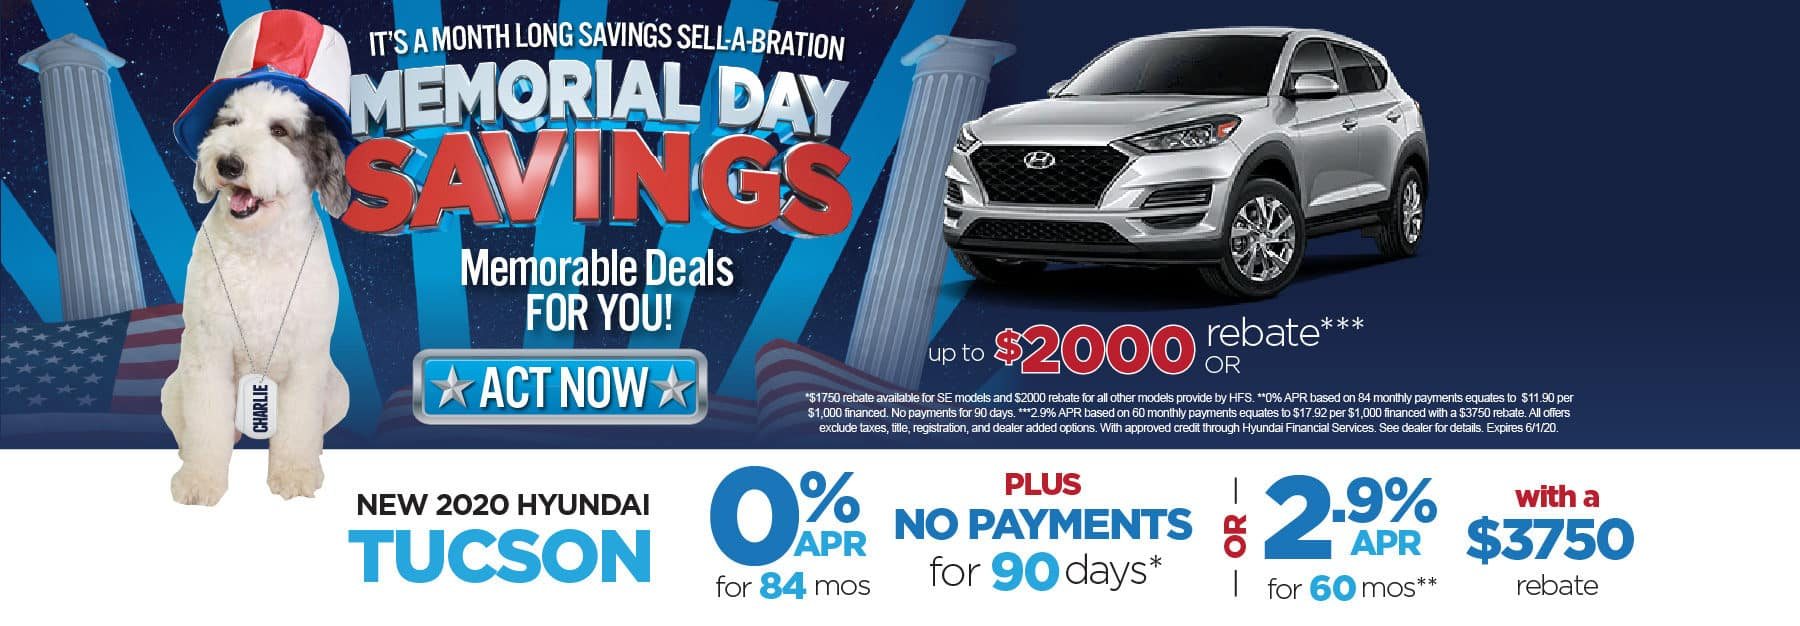 New 2020 Hyundai Tucson 0% APR for 84 months. Click here to view inventory